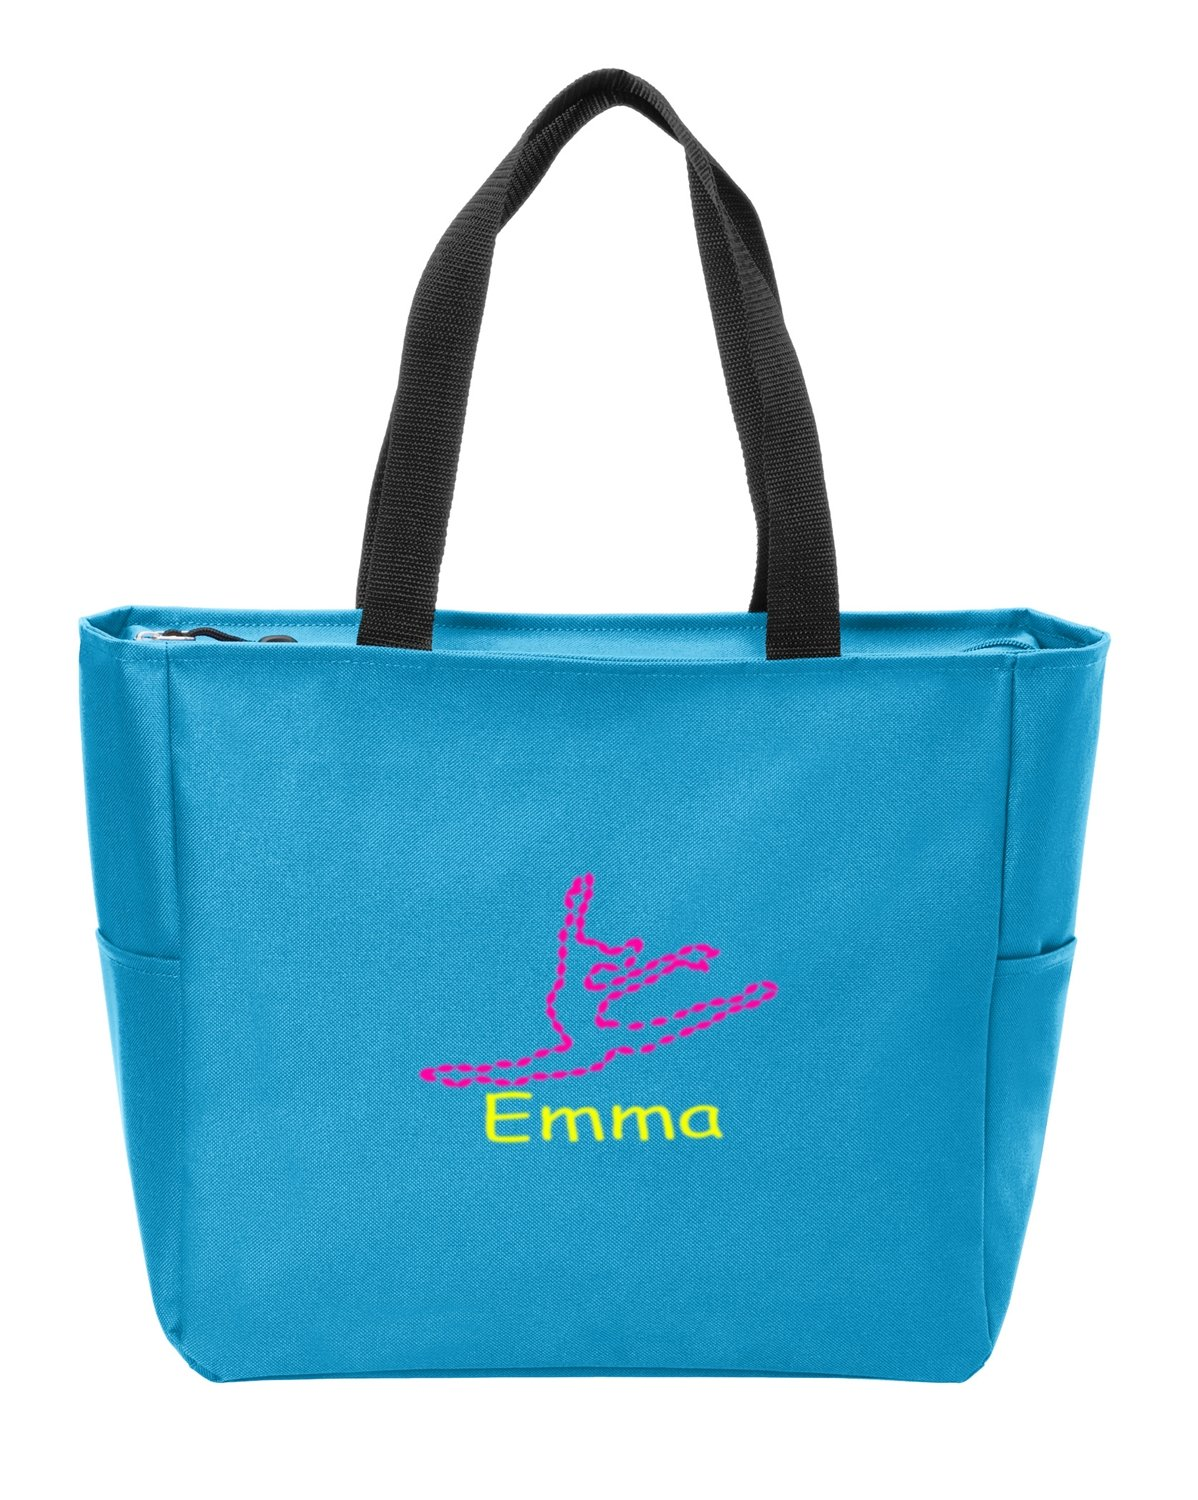 all about me company Essential Zip Tote | Personalized Dance Shoulder Bag (Turquoise)